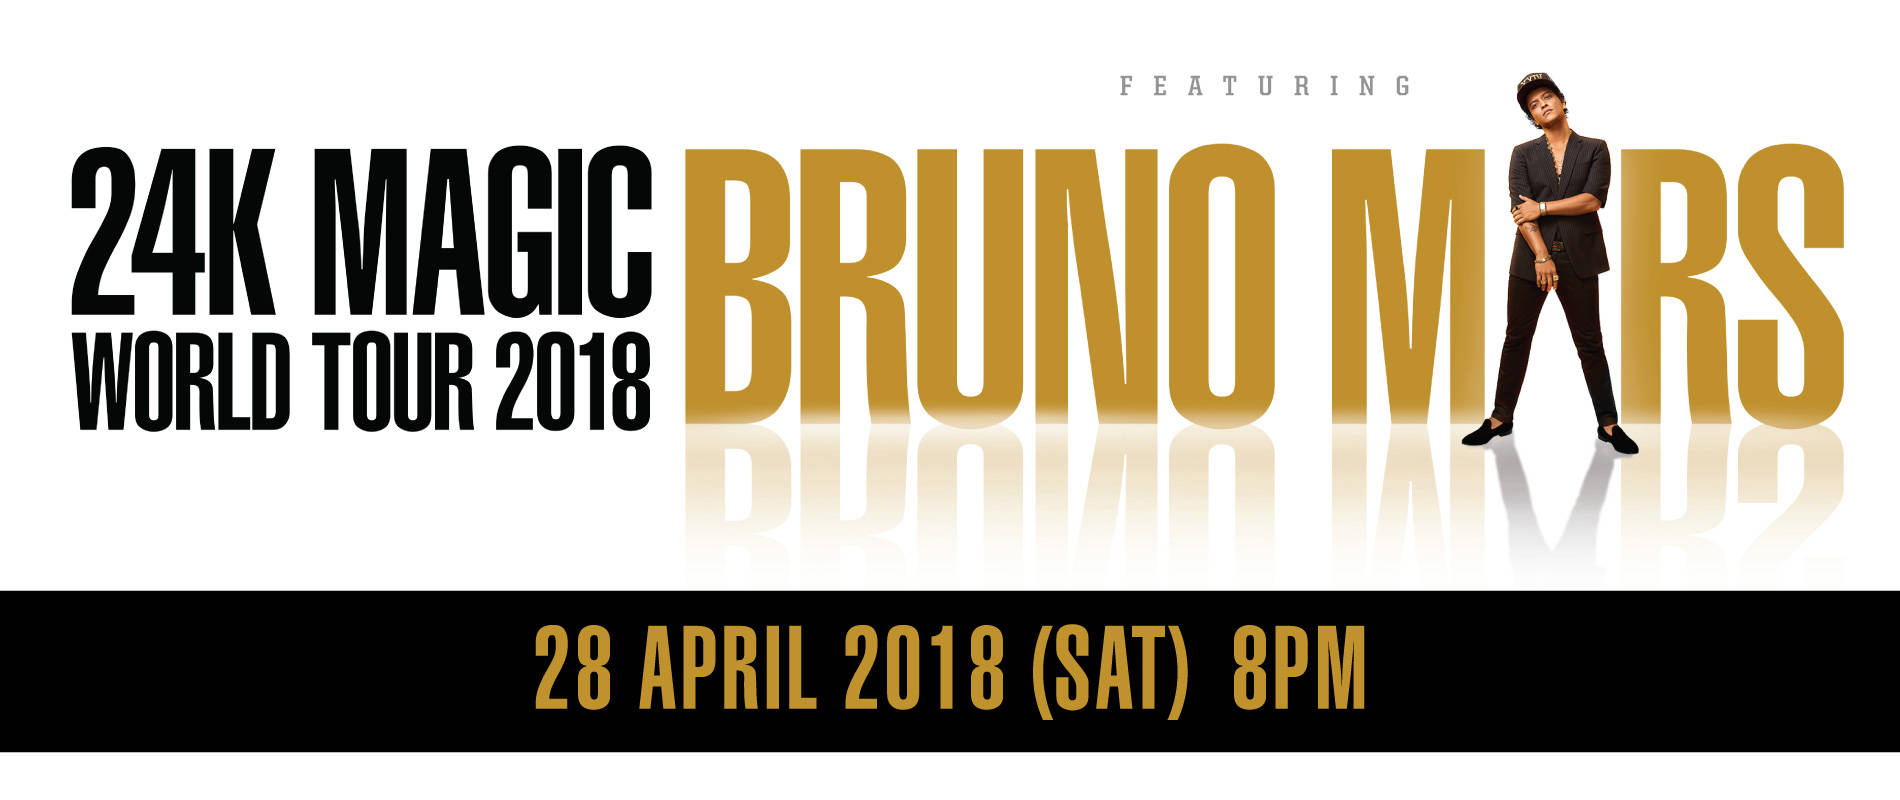 Bruno Mars - 24K Magic World Tour Thumbnail Picture